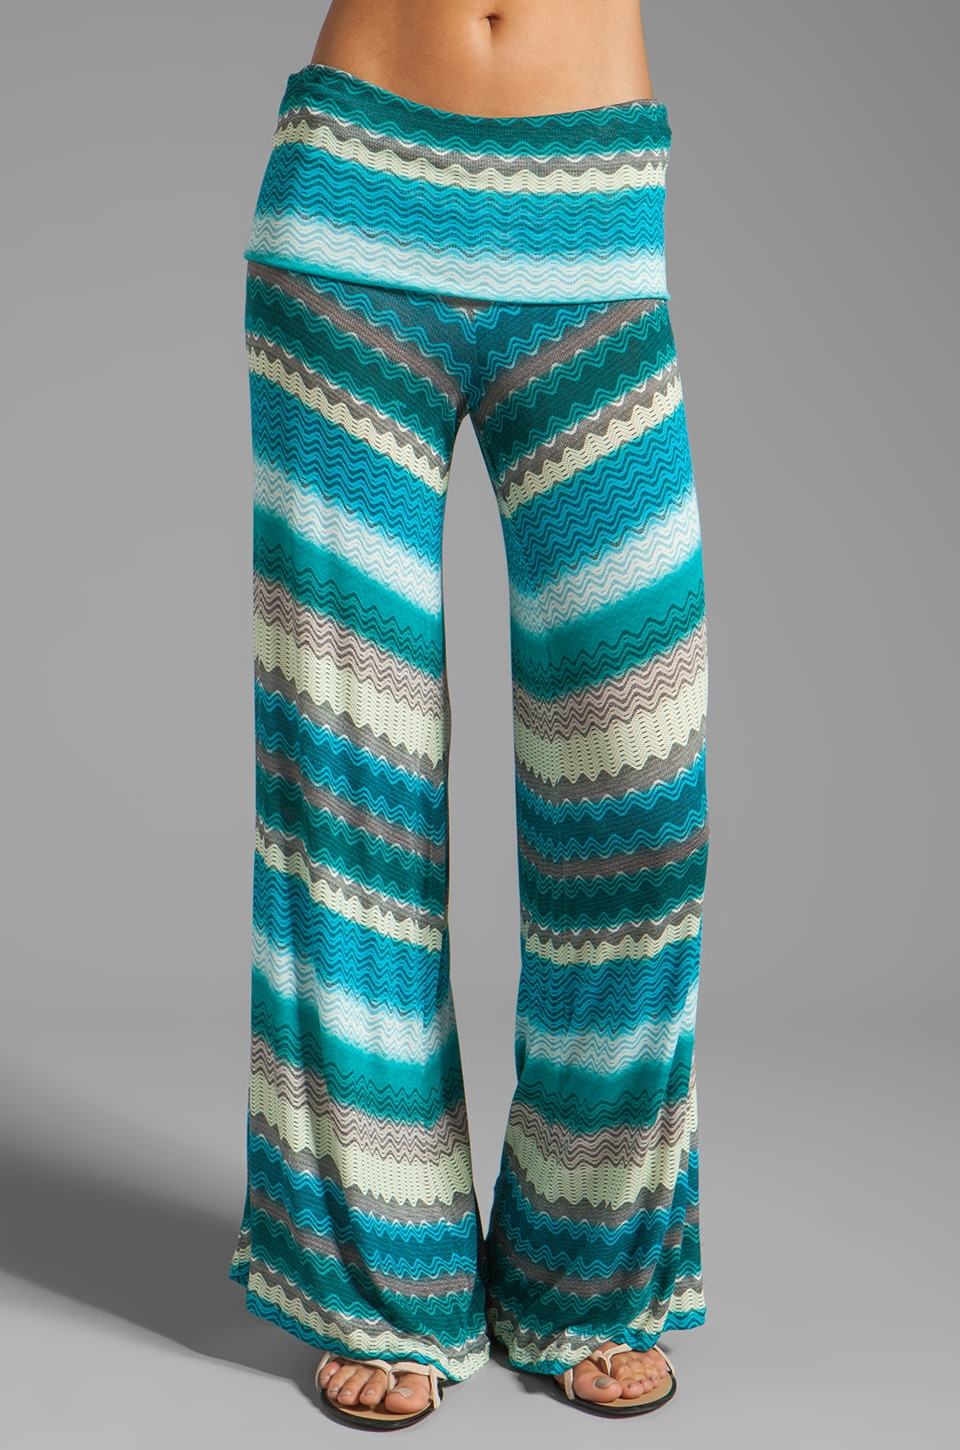 Karina Grimaldi Basic Knit Pants Print in Teal Zig Zag